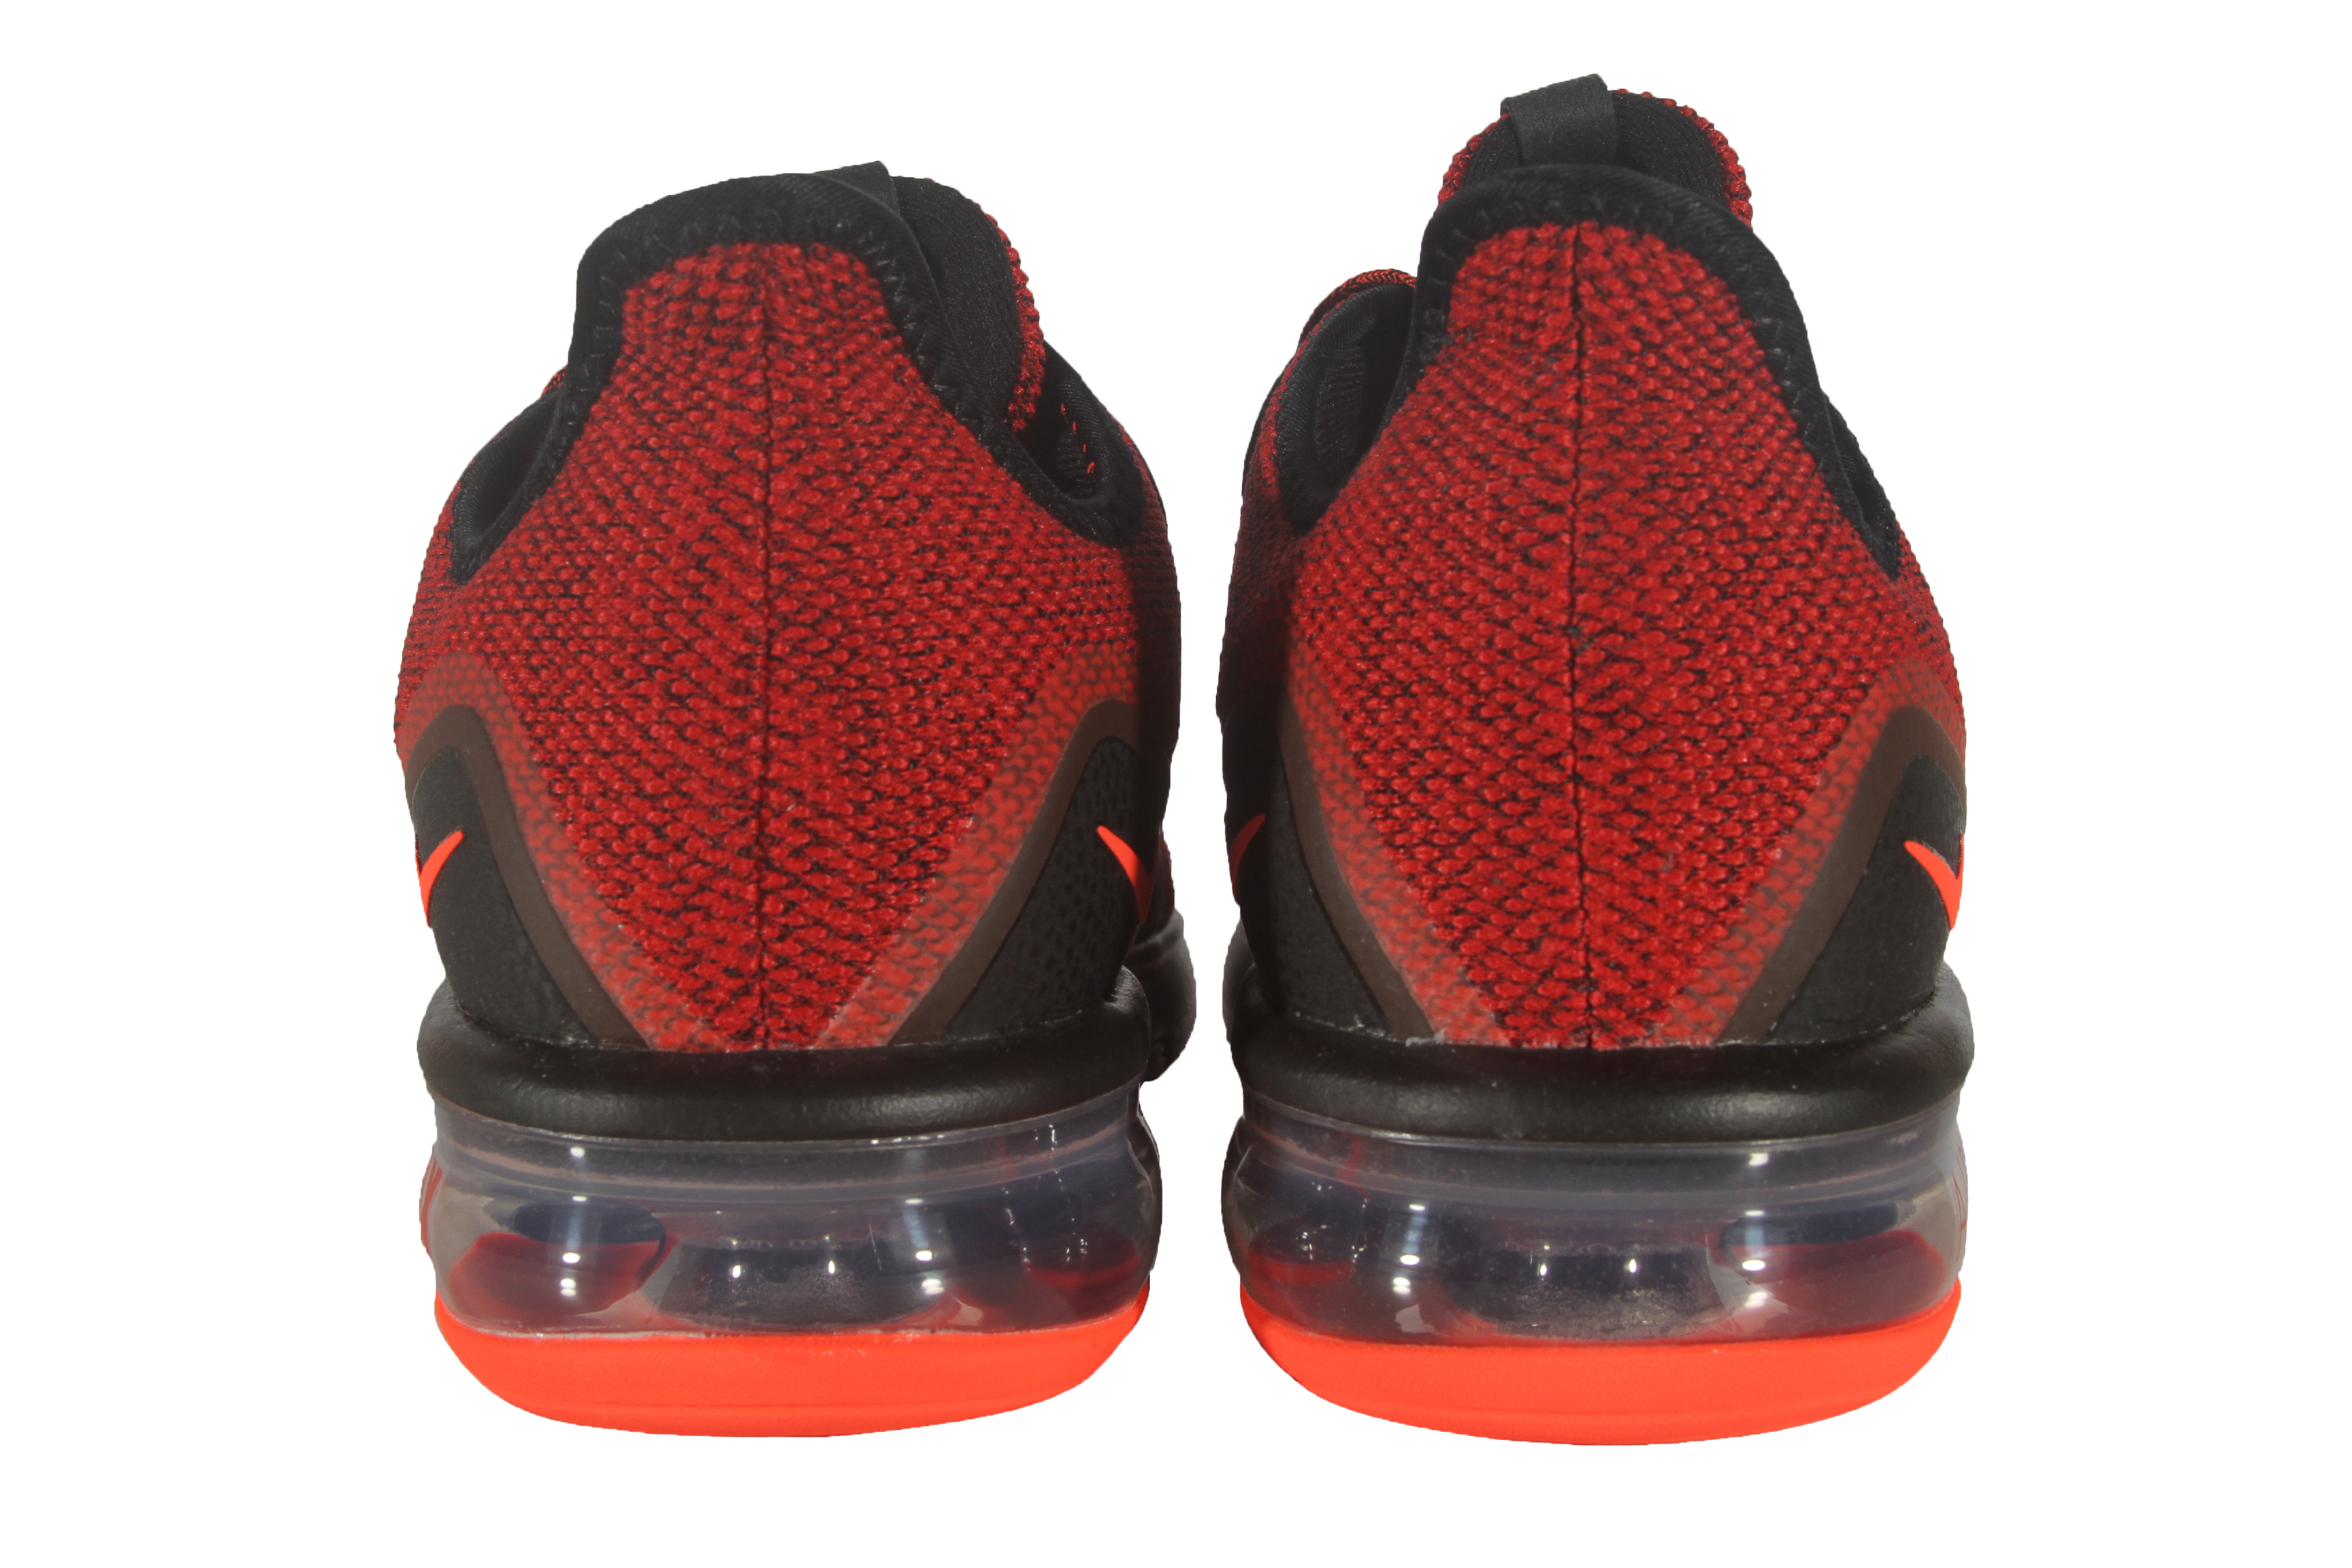 the latest 4427d 576d9 ... Nike Air Max Sequent Sequent Sequent 3 Men s Running Shoes 921694-066  3d8180 ...